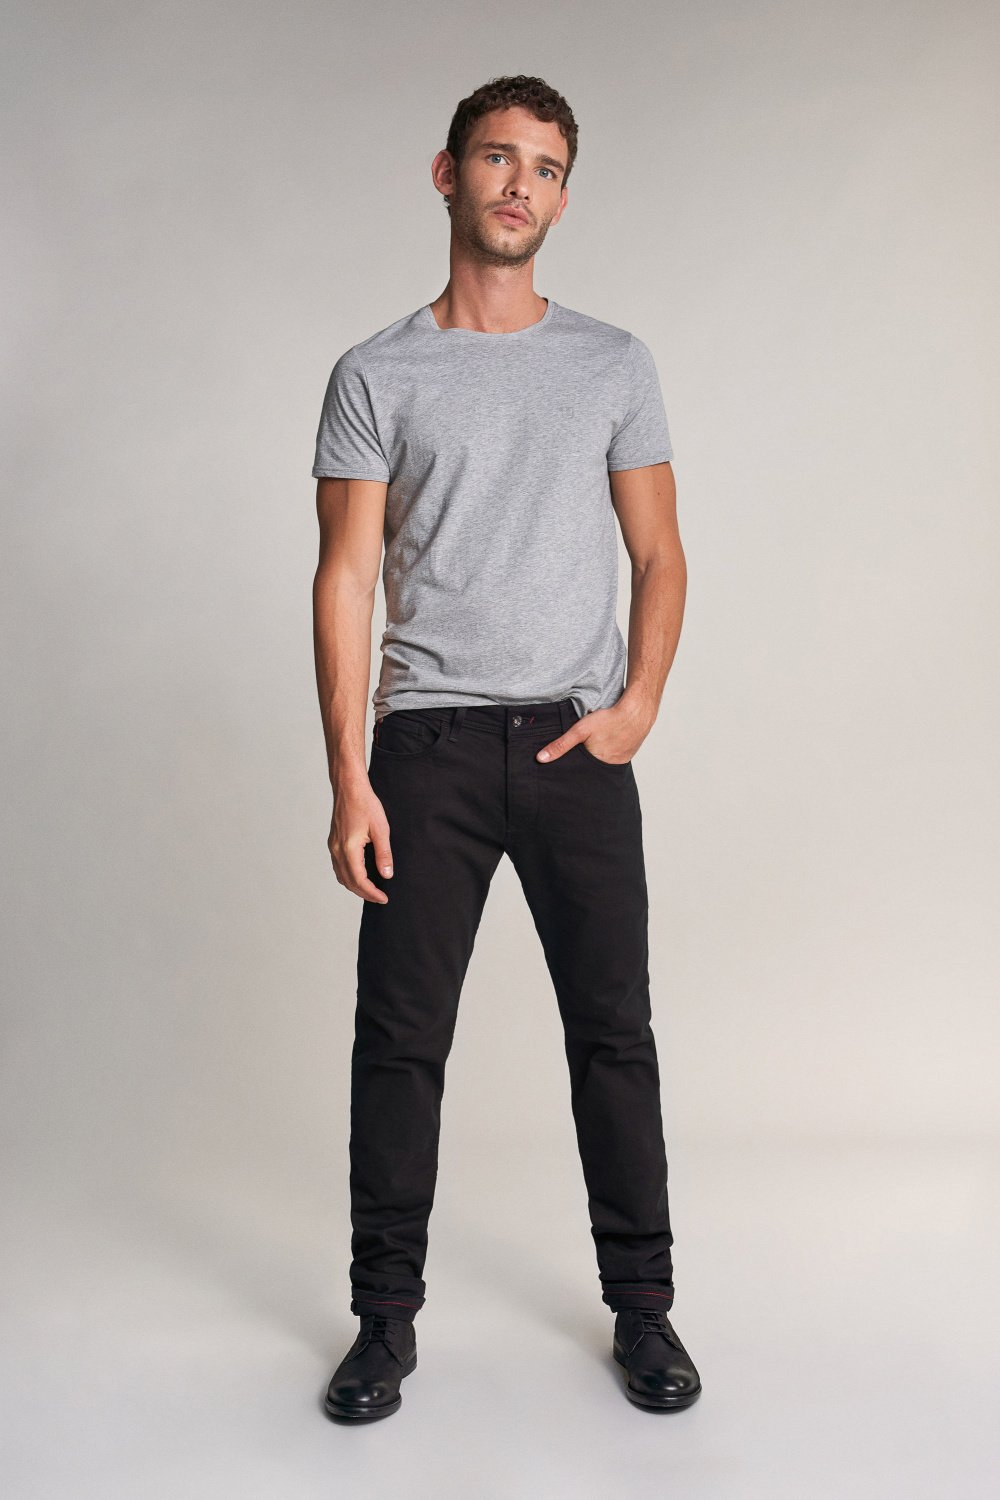 Lima tapered jeans in black - Salsa